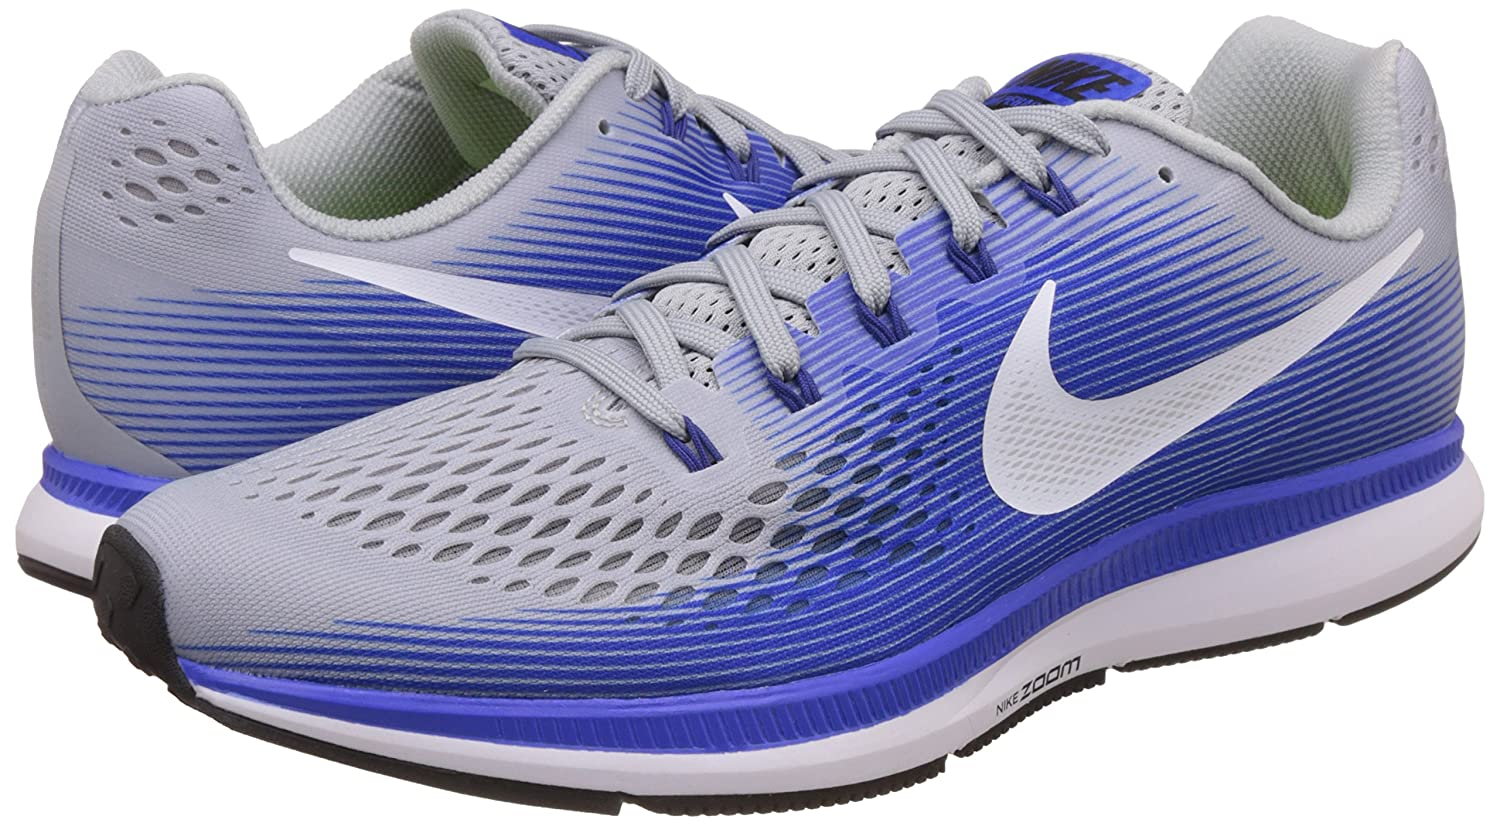 Nike Air Zoom Pegasus 34 Menns Amazon vqJBKsGJfC